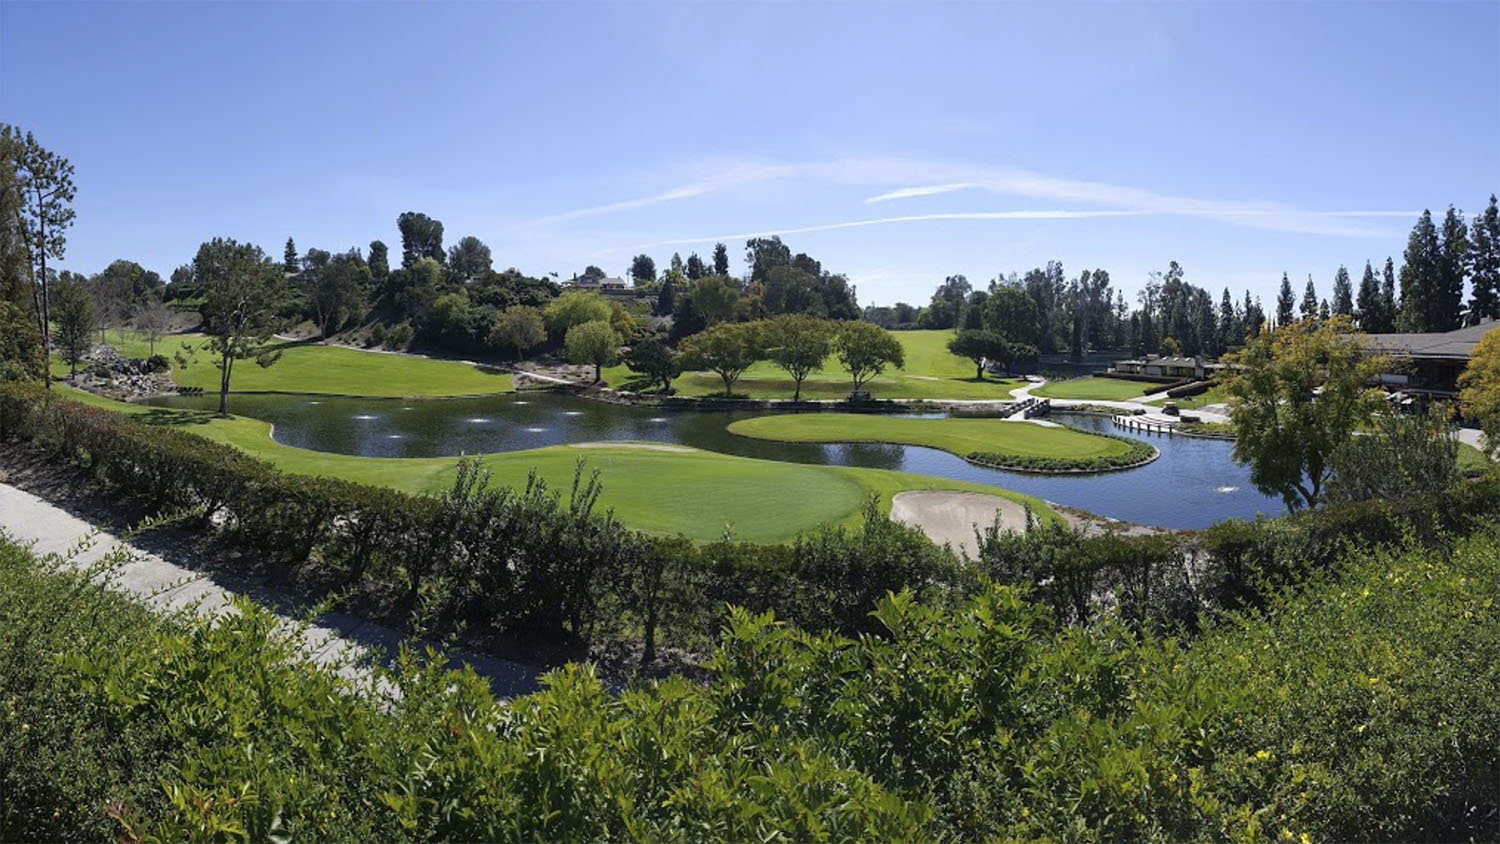 The scenic Friendly Hills Country Club